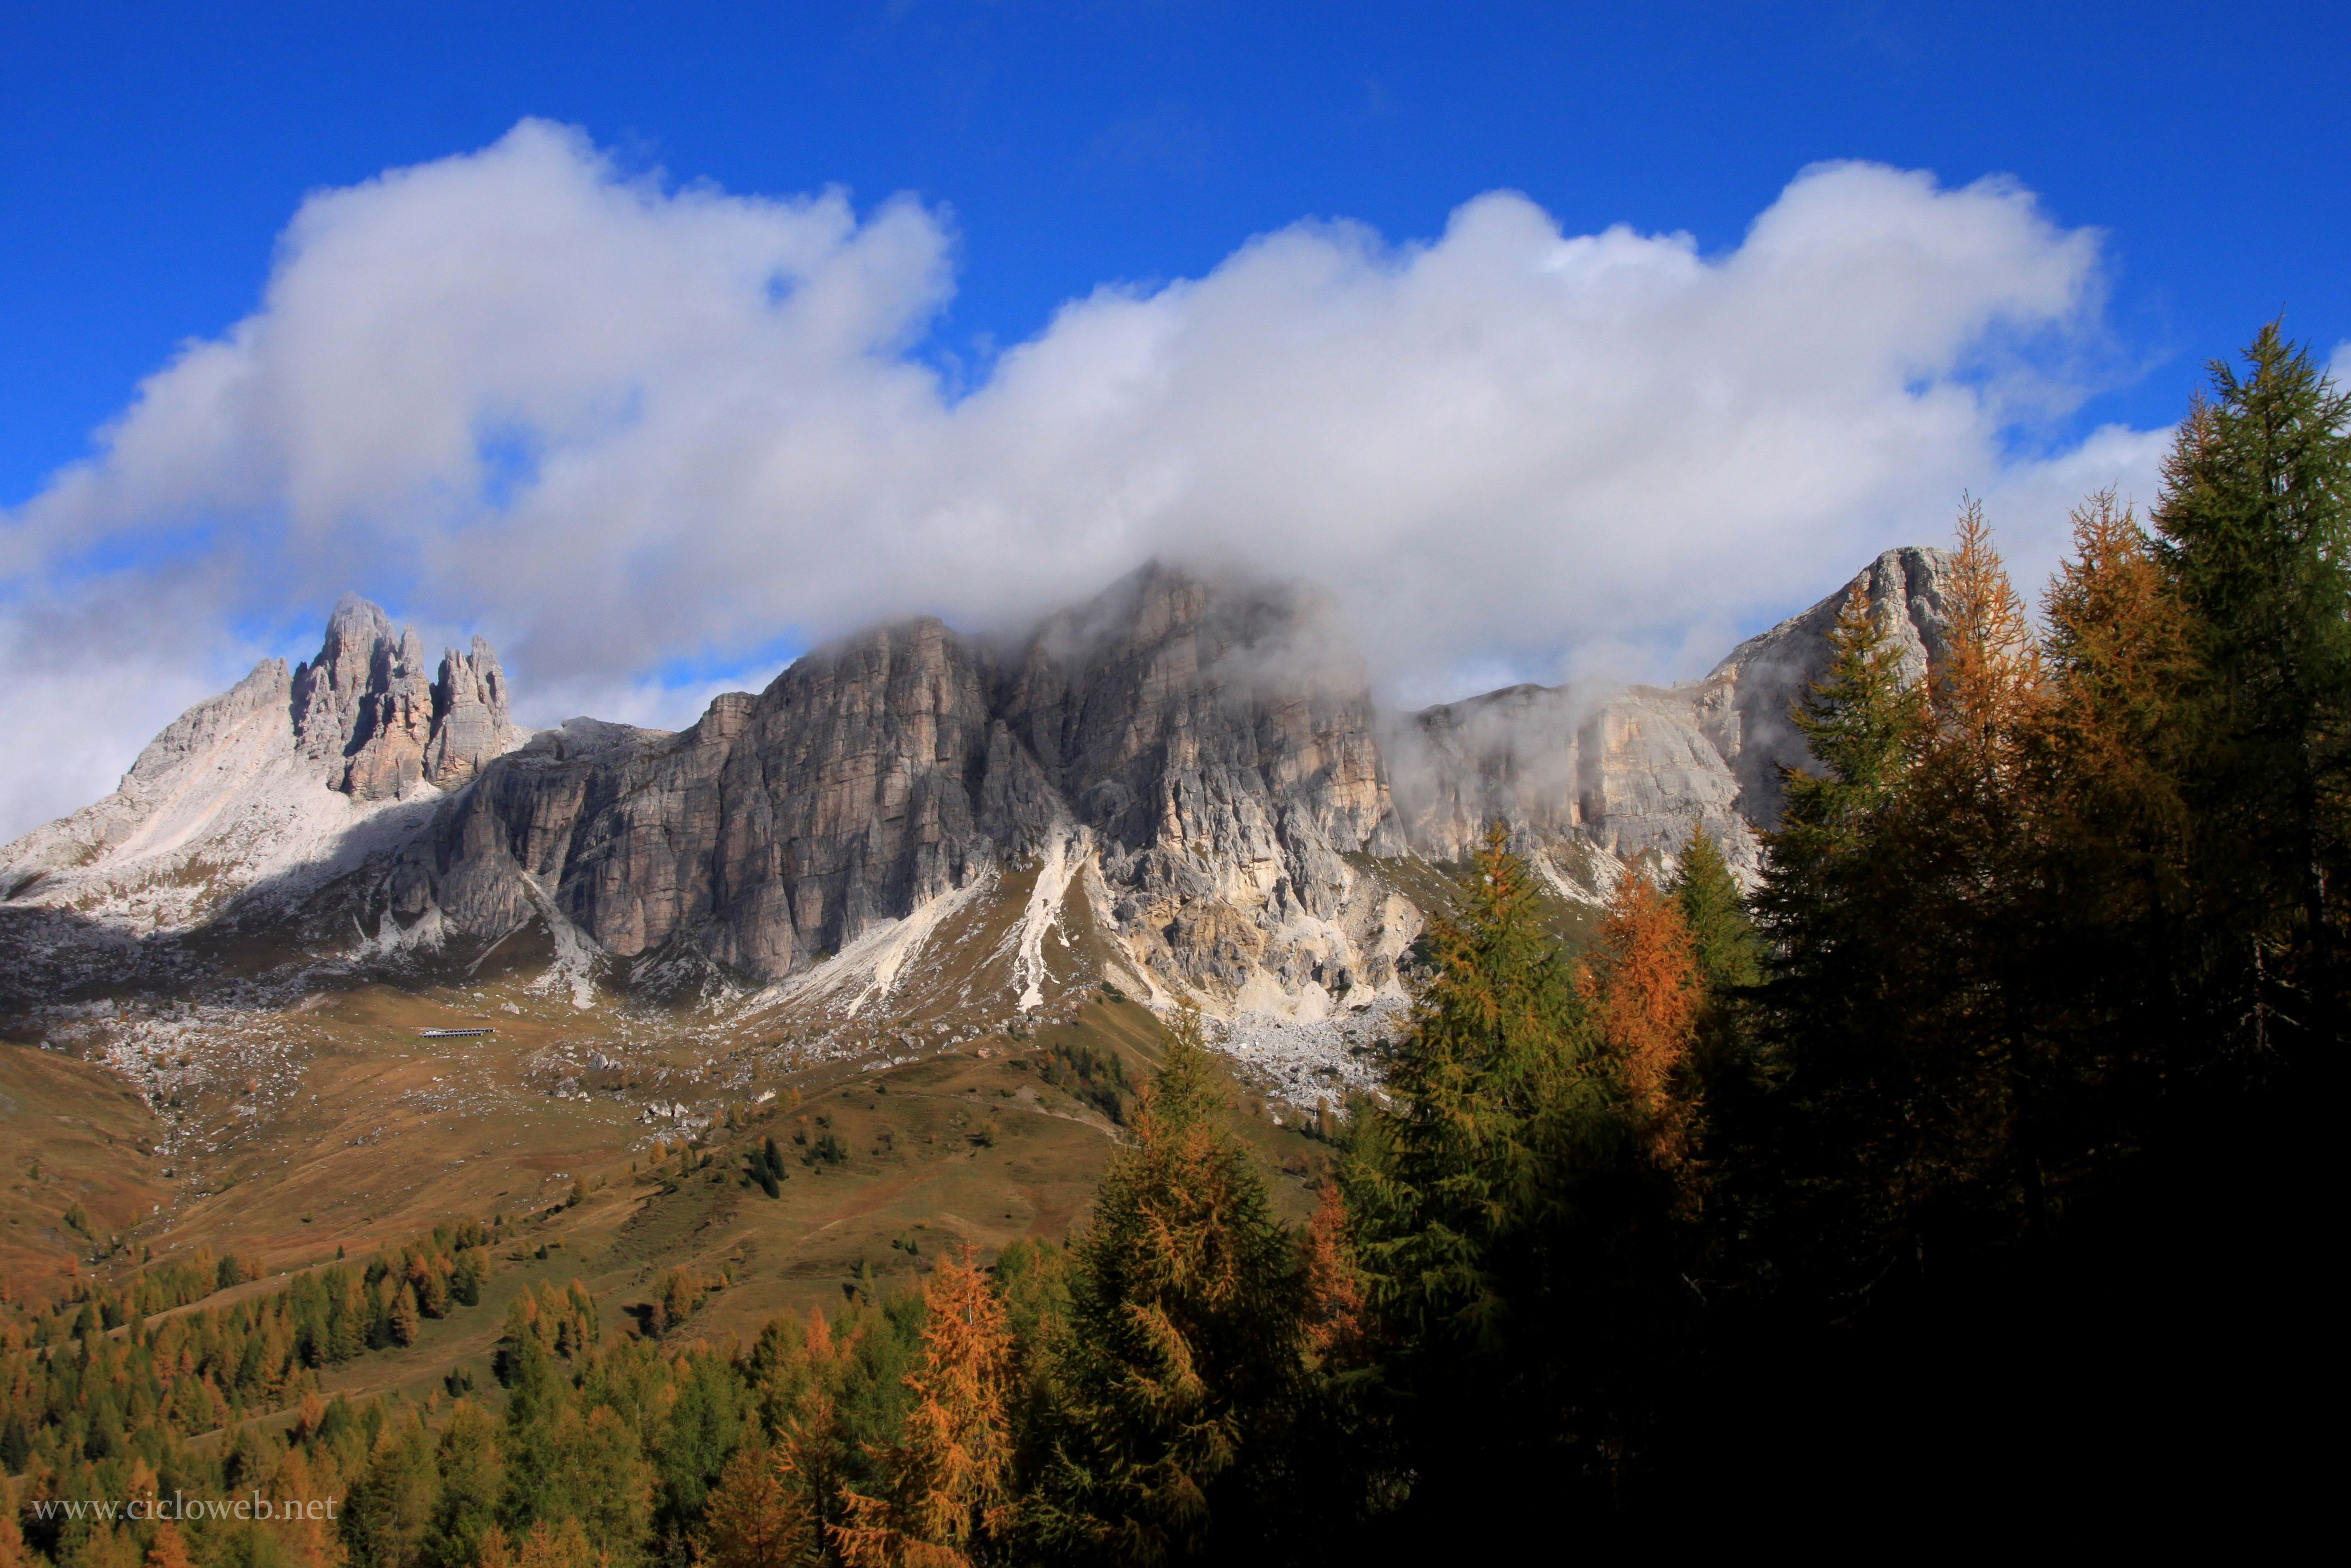 Forcelle dolomitiche